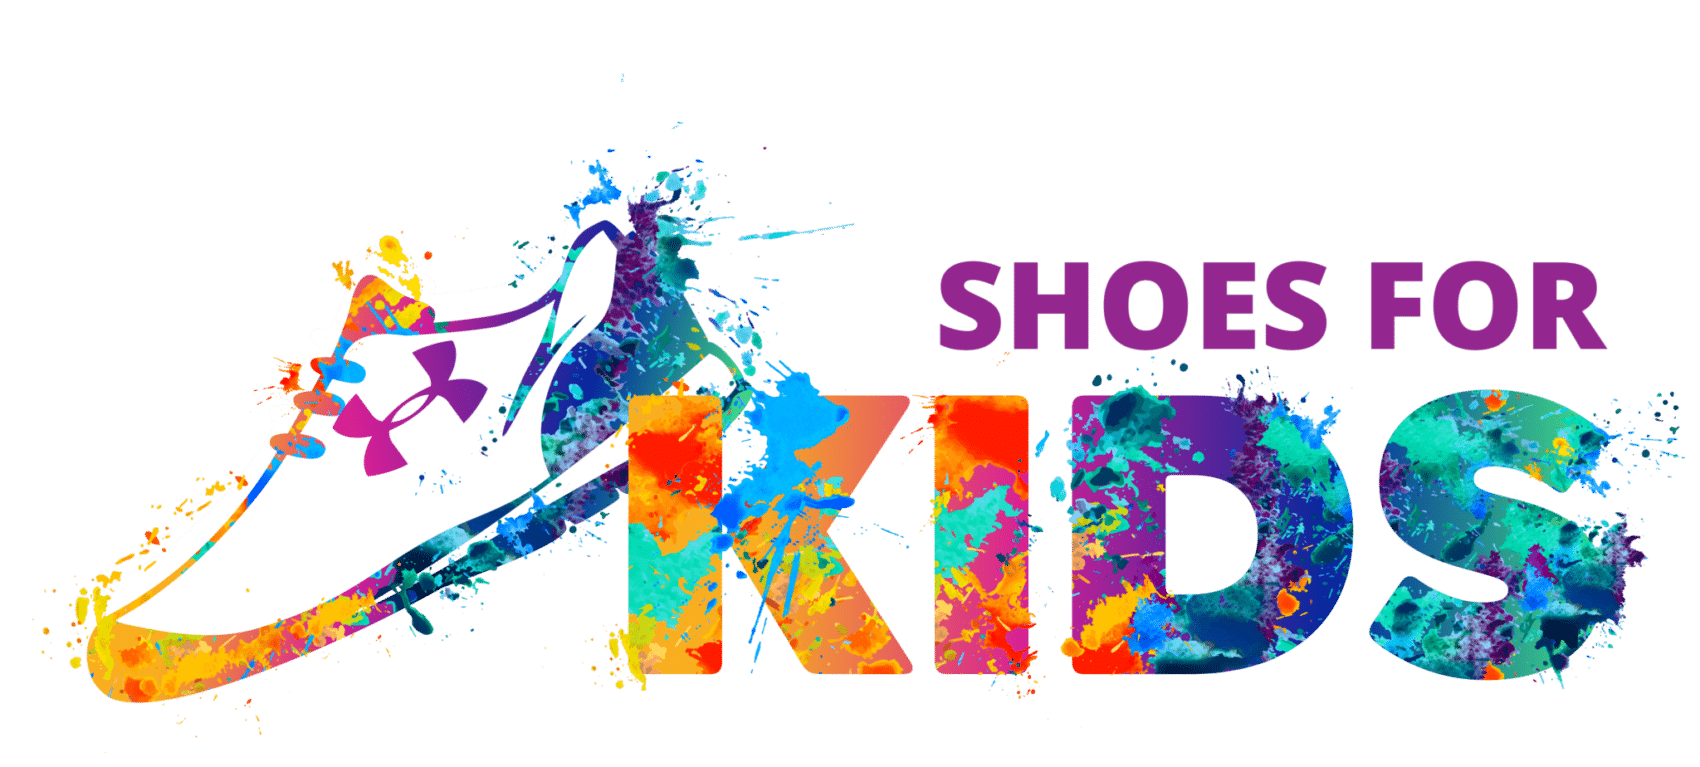 Shoes for Kids | Fargo Marathon